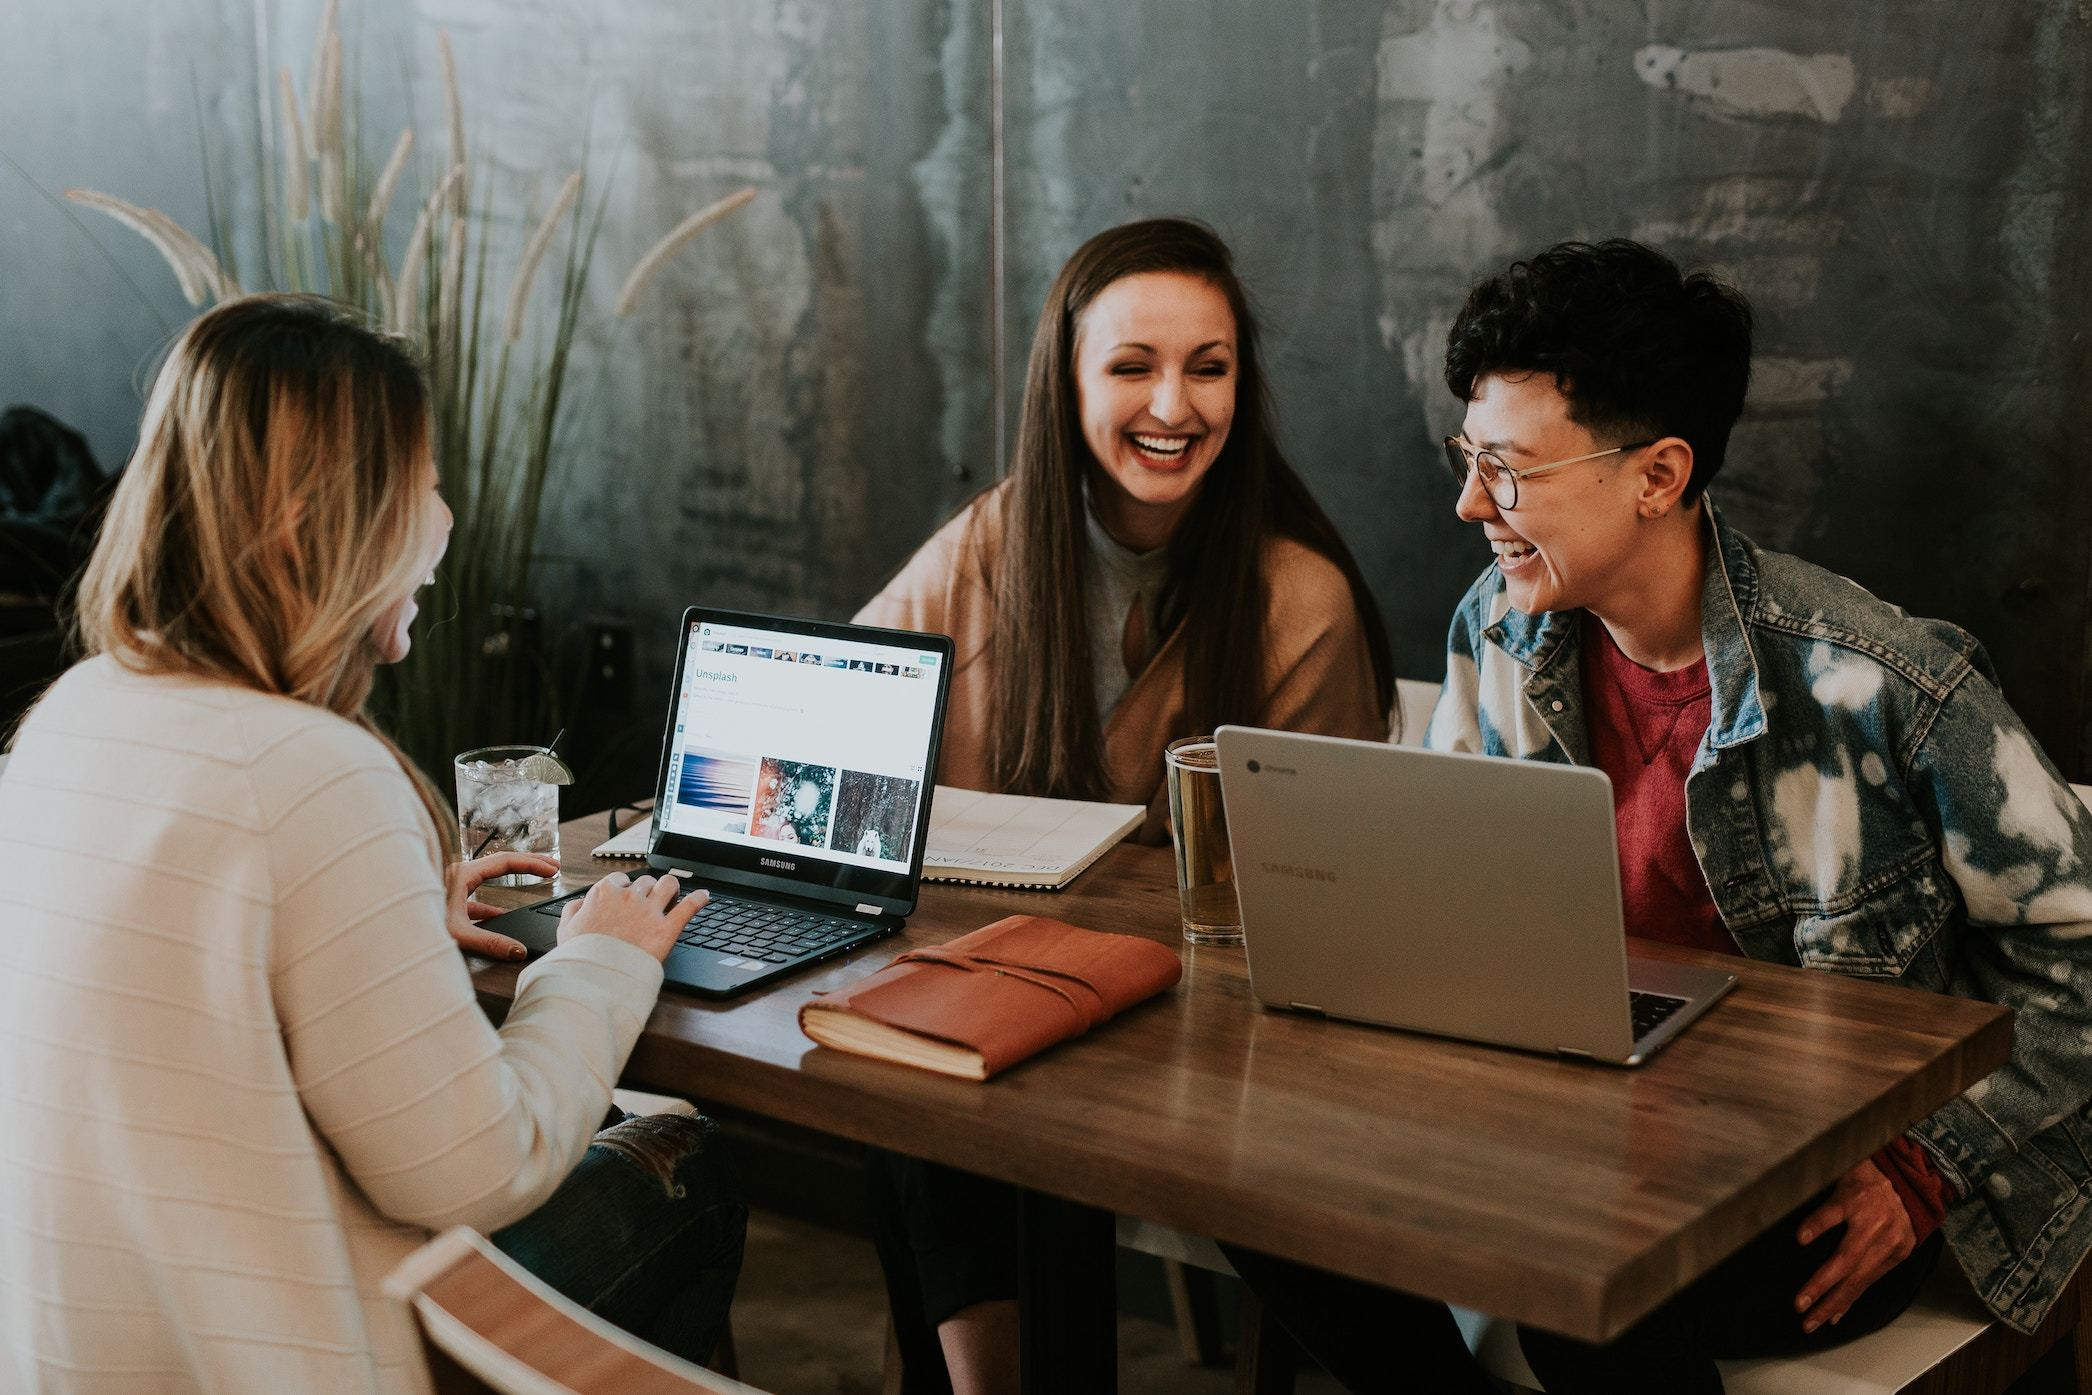 three women at a work table laughing